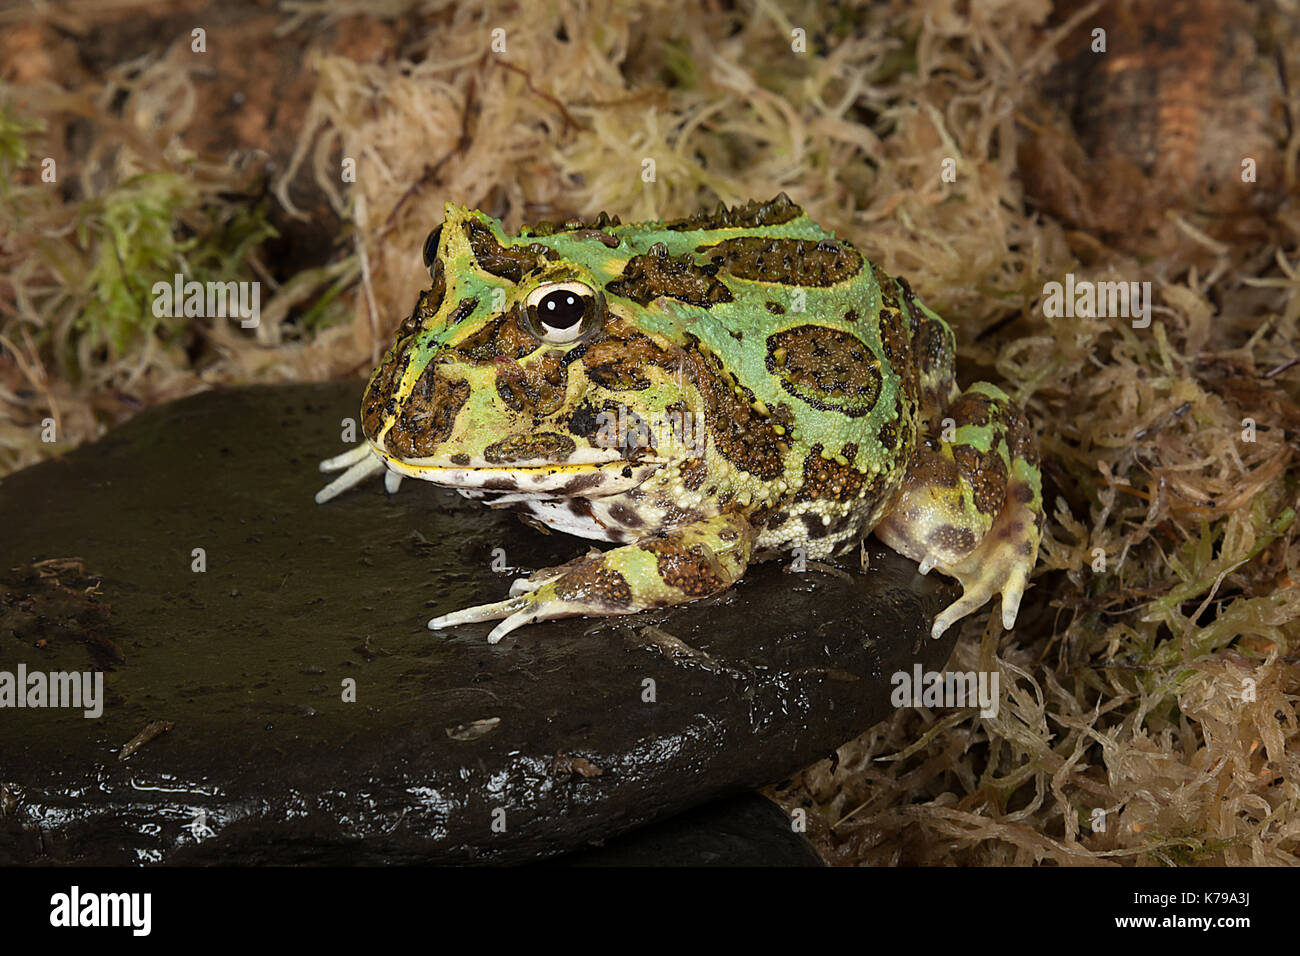 full length portrait of a bull frog sitting on a pebble by a pond edge - Stock Image